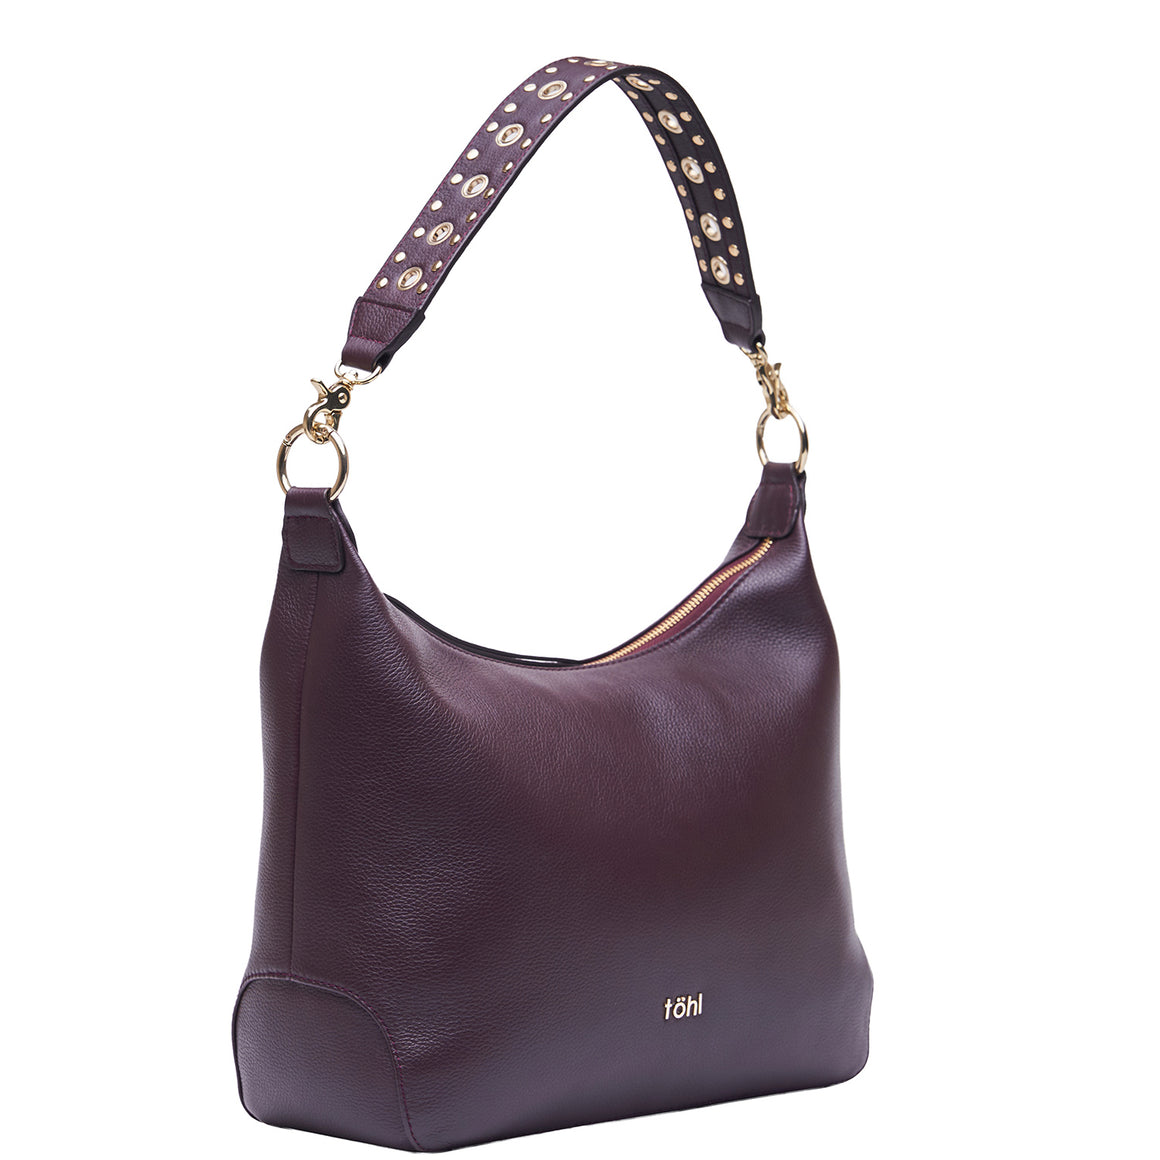 SB 0026 - TOHL FENCHURCH WOMEN'S SHOULDER BAG - PLUM